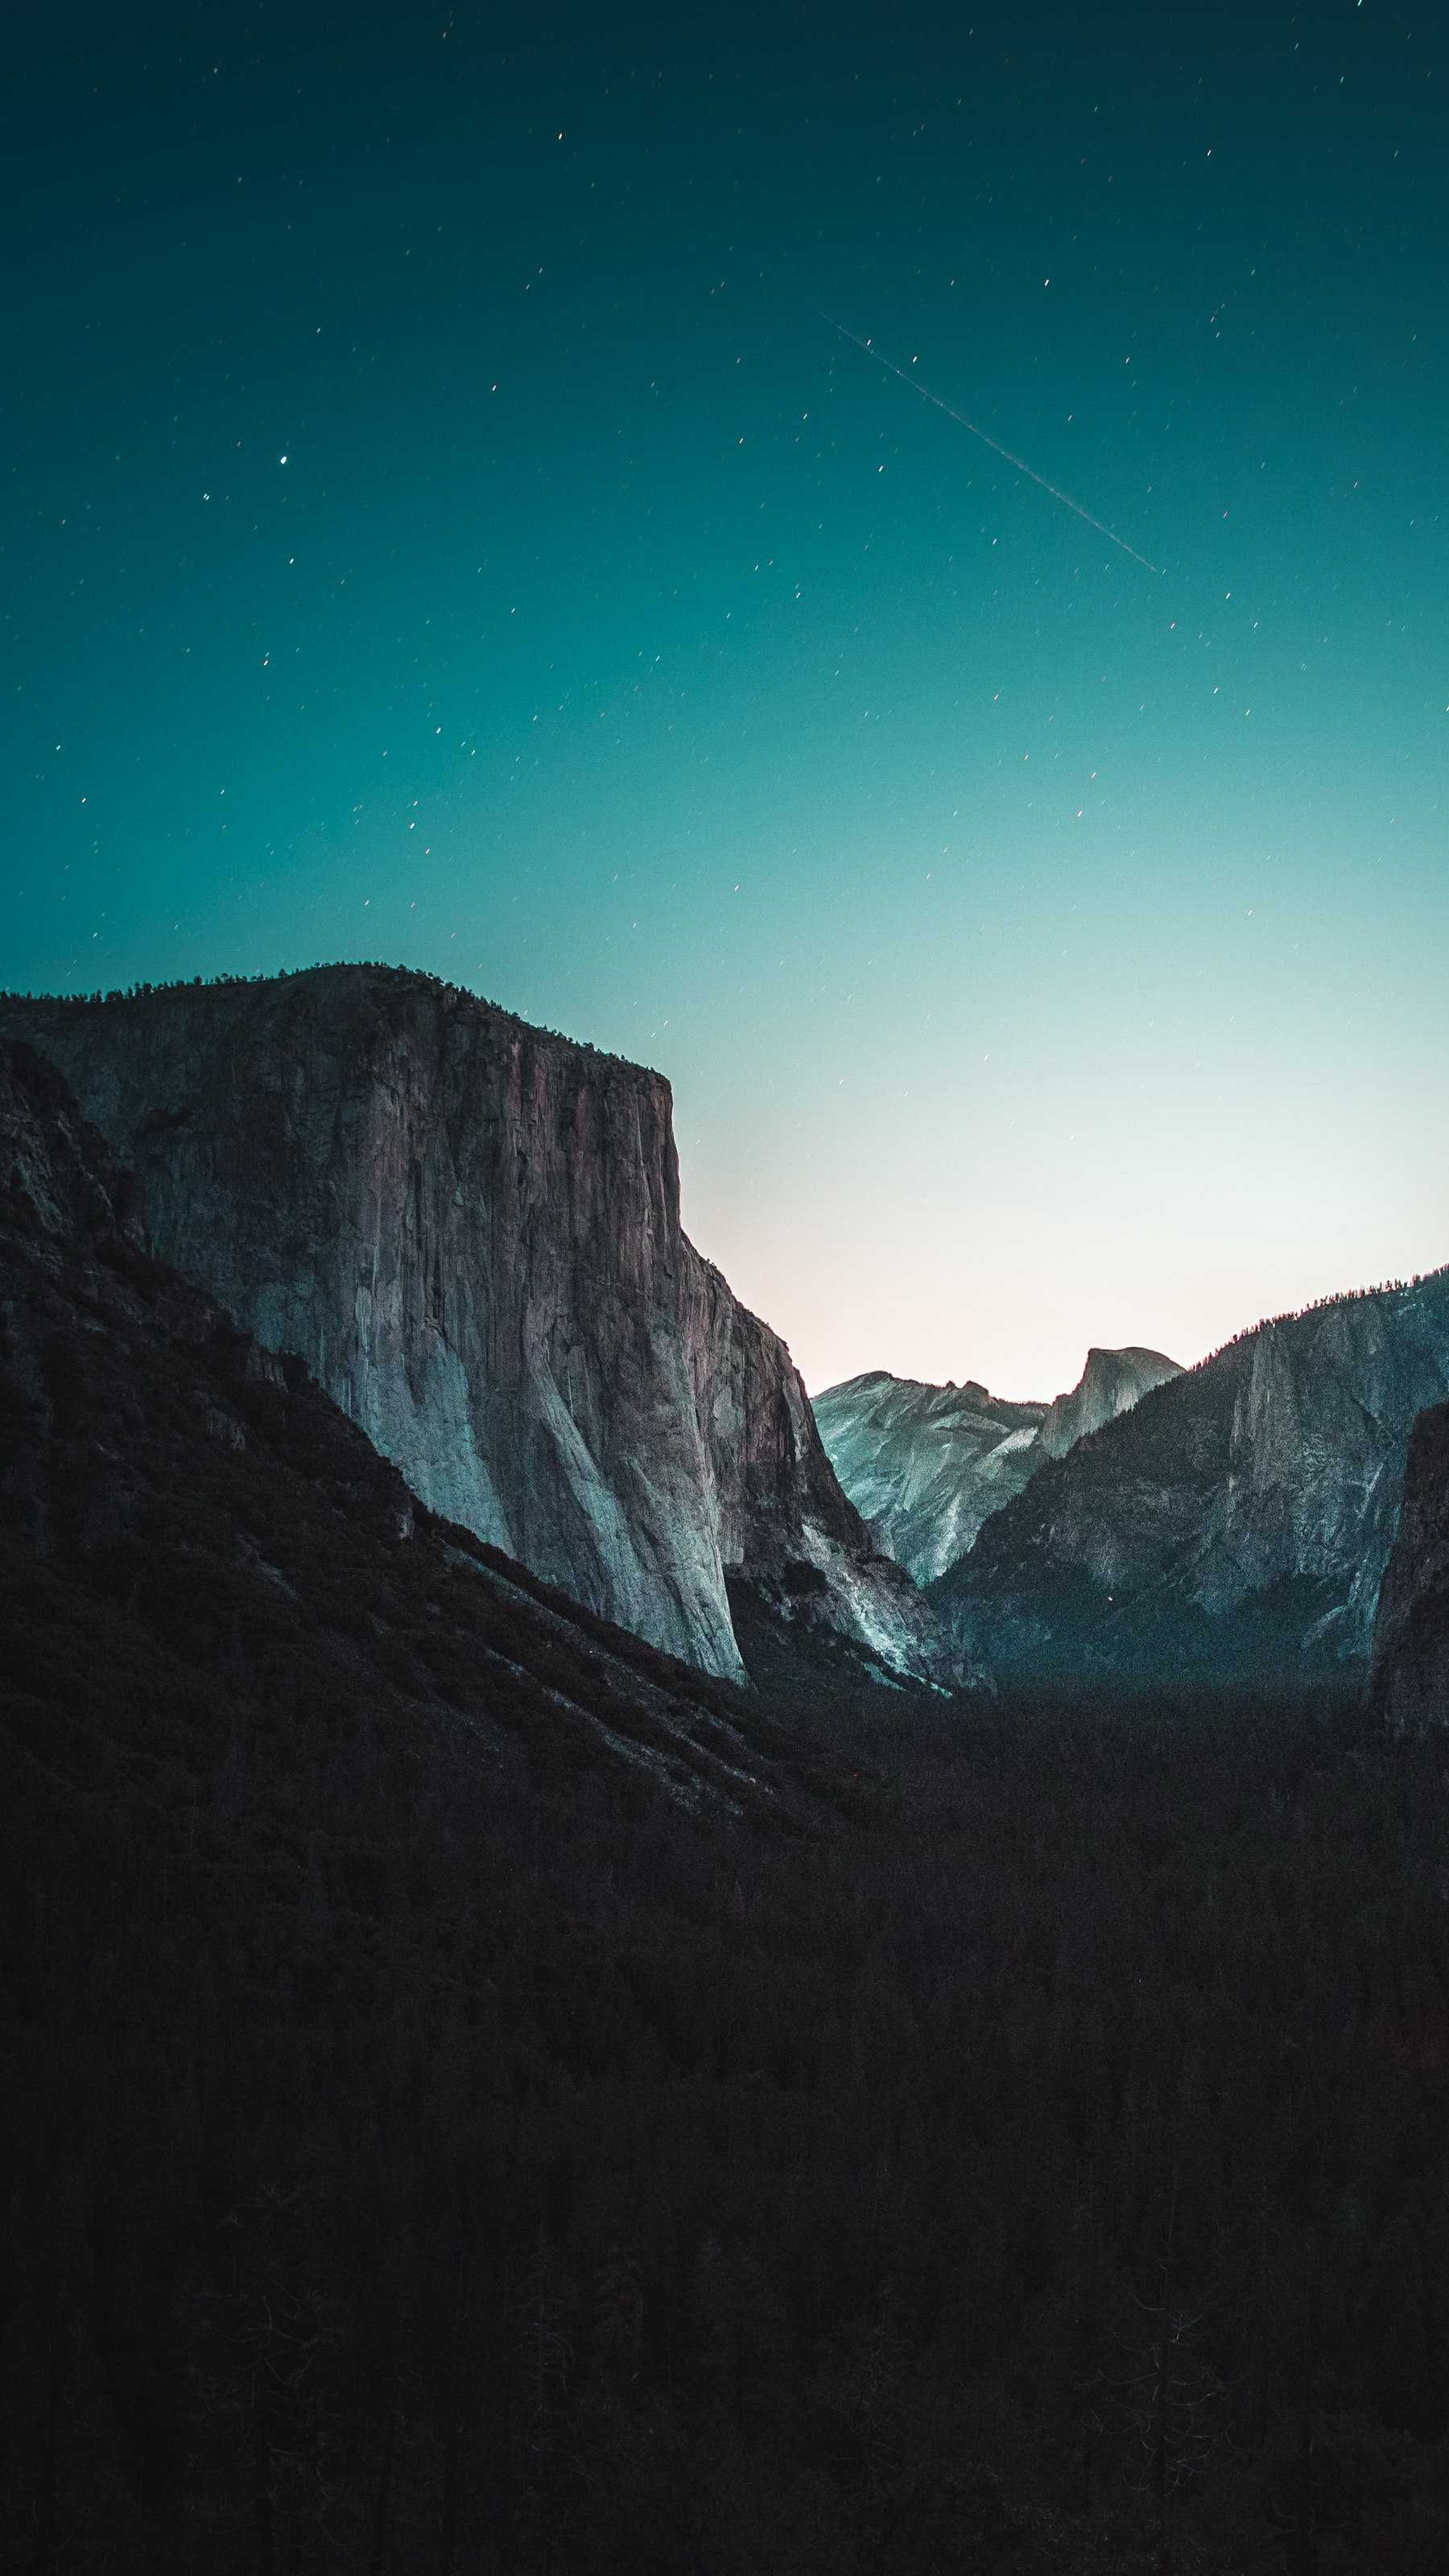 Yosemite Night iPhone Wallpaper from iphoneswallpapers.com